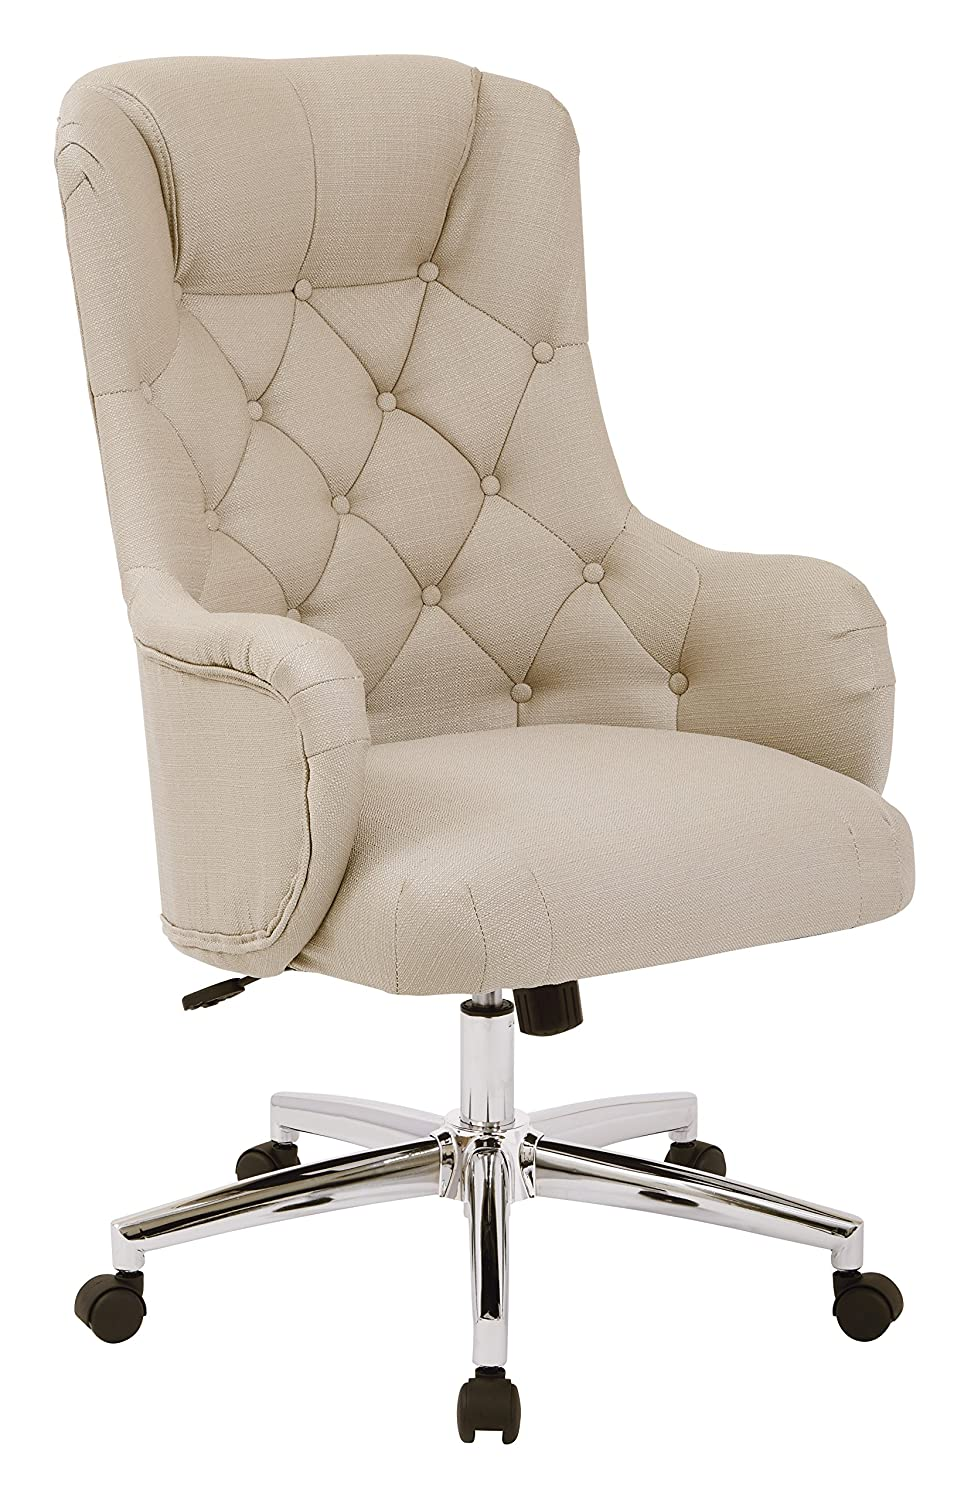 Tufted High Back Desk Chair